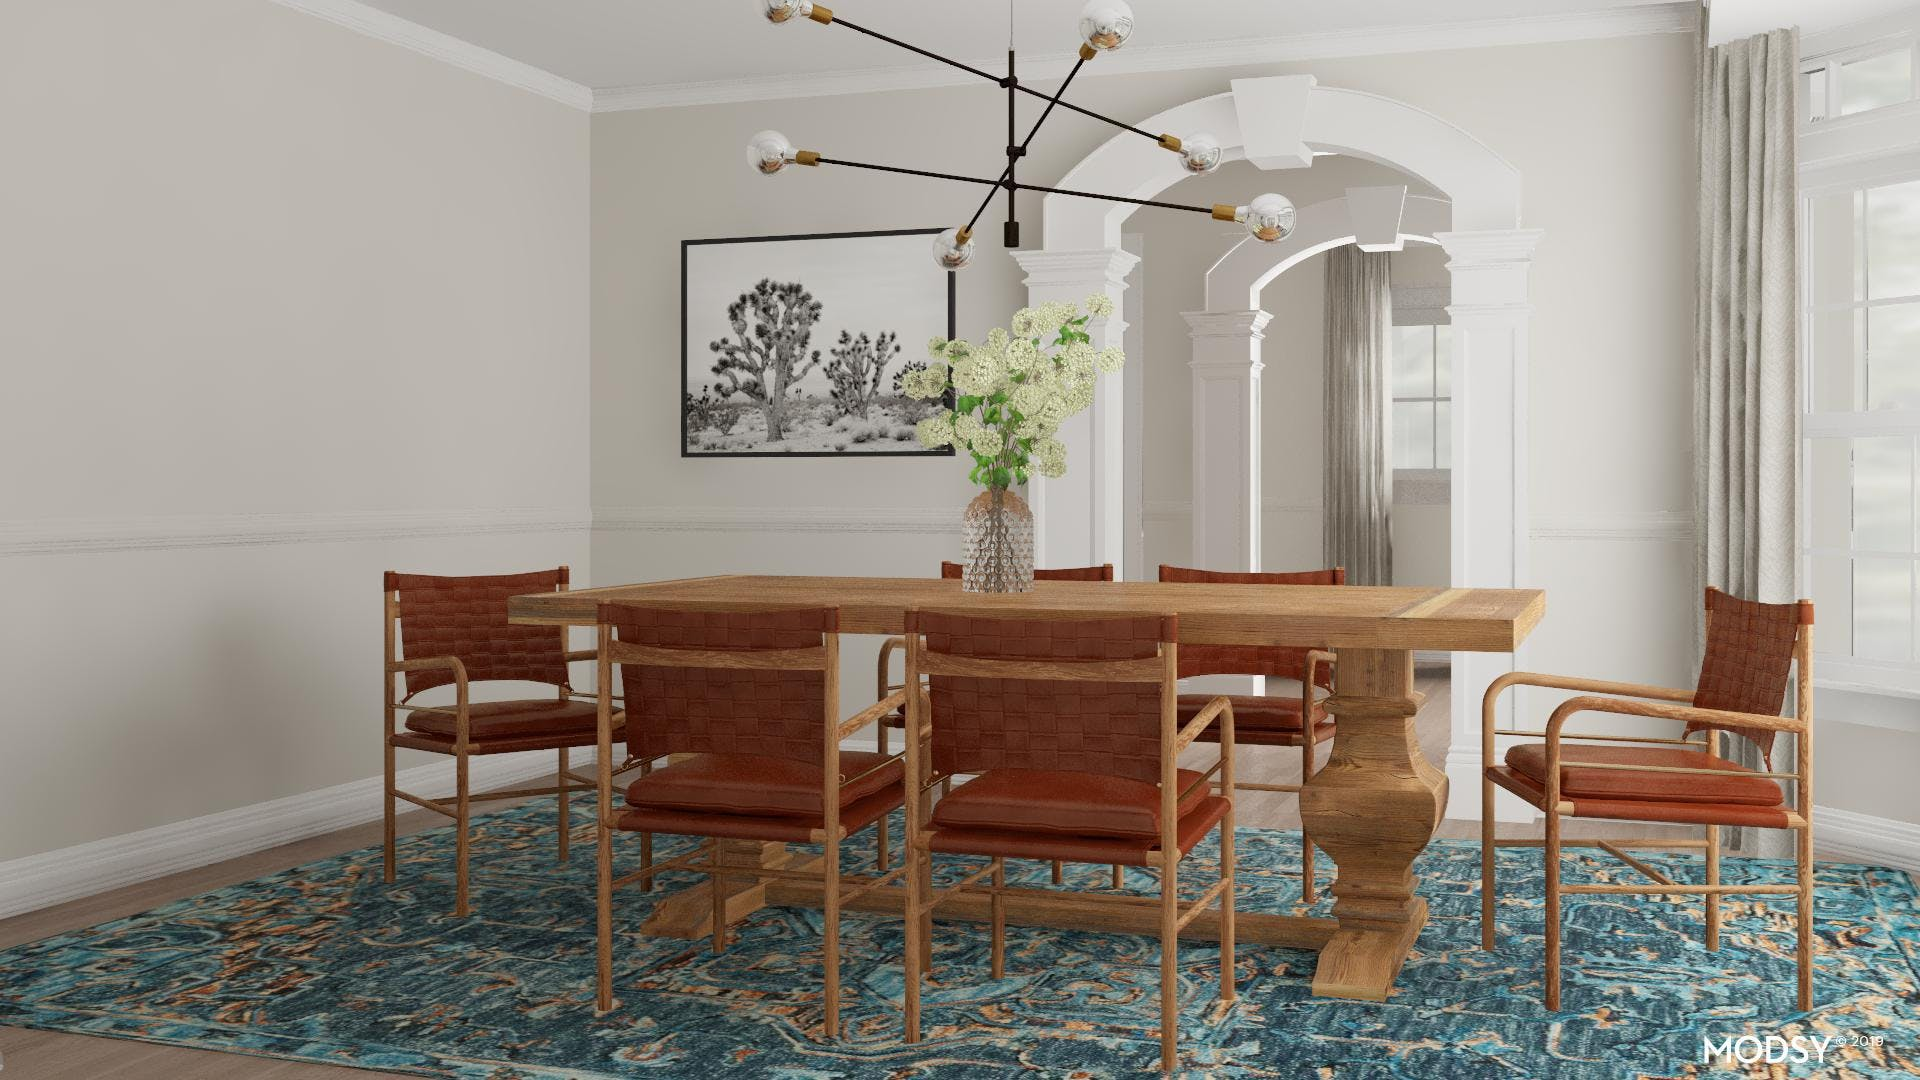 Eclectic Mid-Century Dining Room